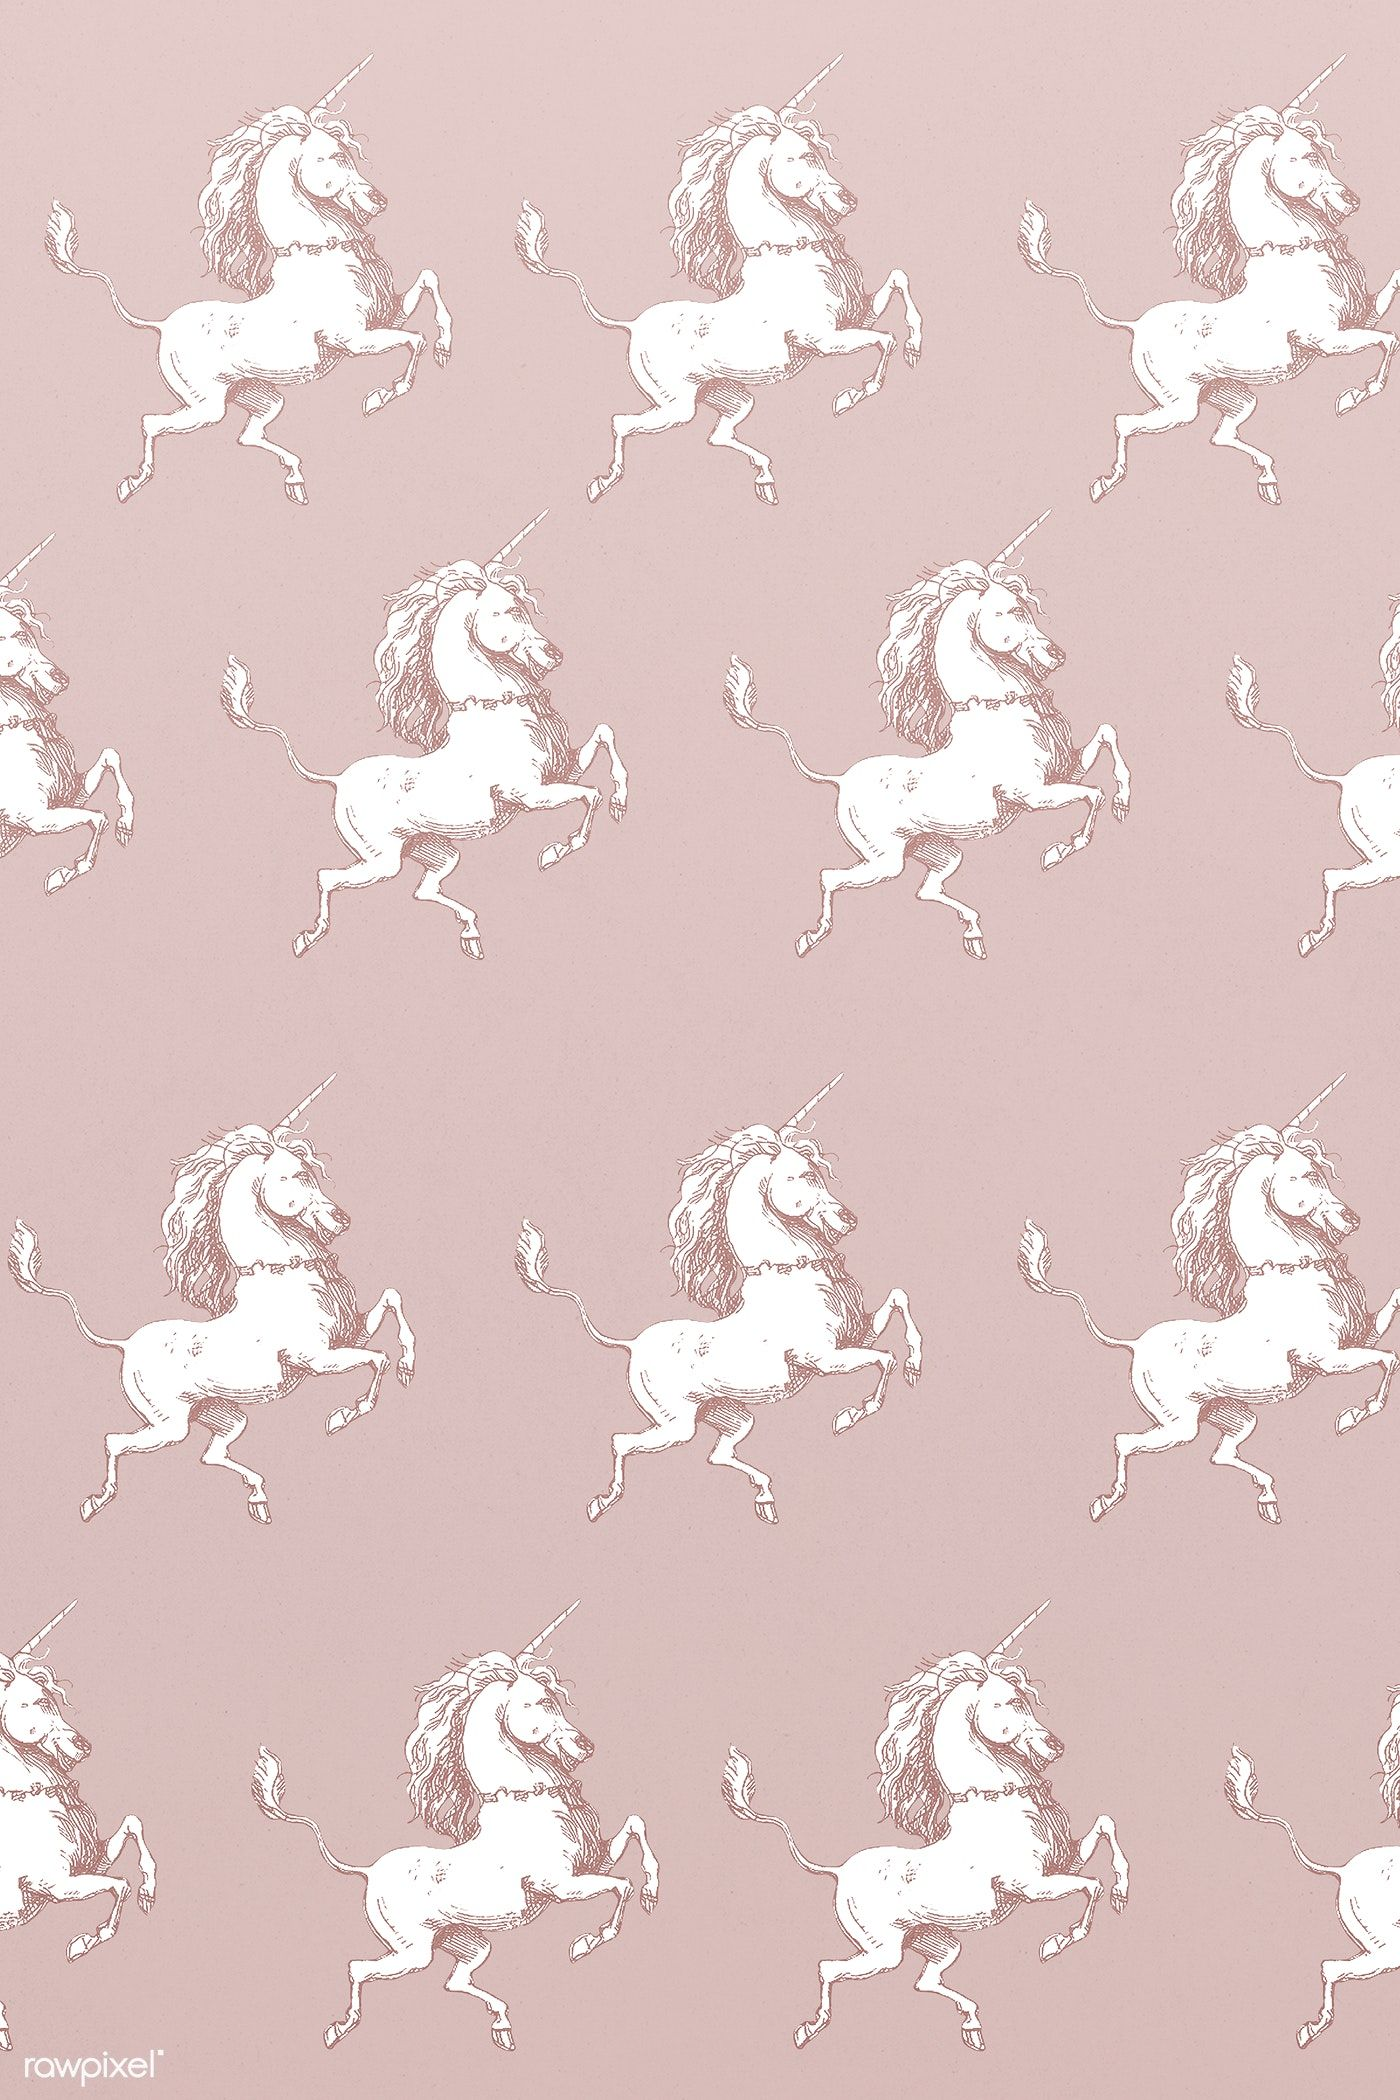 Vintage Unicorn Illustration Seamless Patterned Wallpaper Premium Image By Rawpixel Com Nap ในป 2020